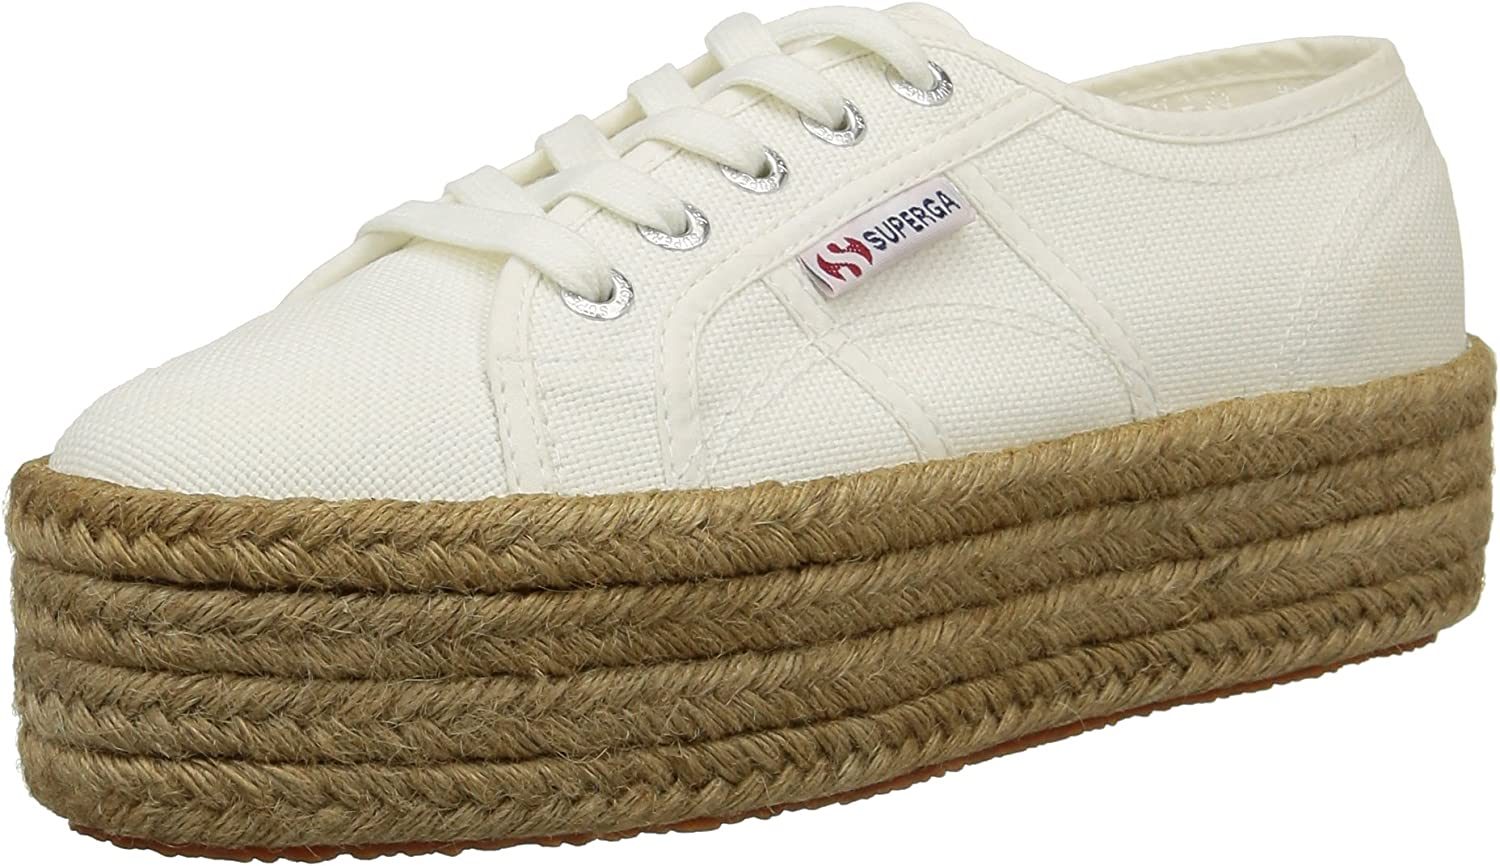 New Superga 2790 Cotropew Platform Classic Shoes Sneakers Women All Sizes Colors